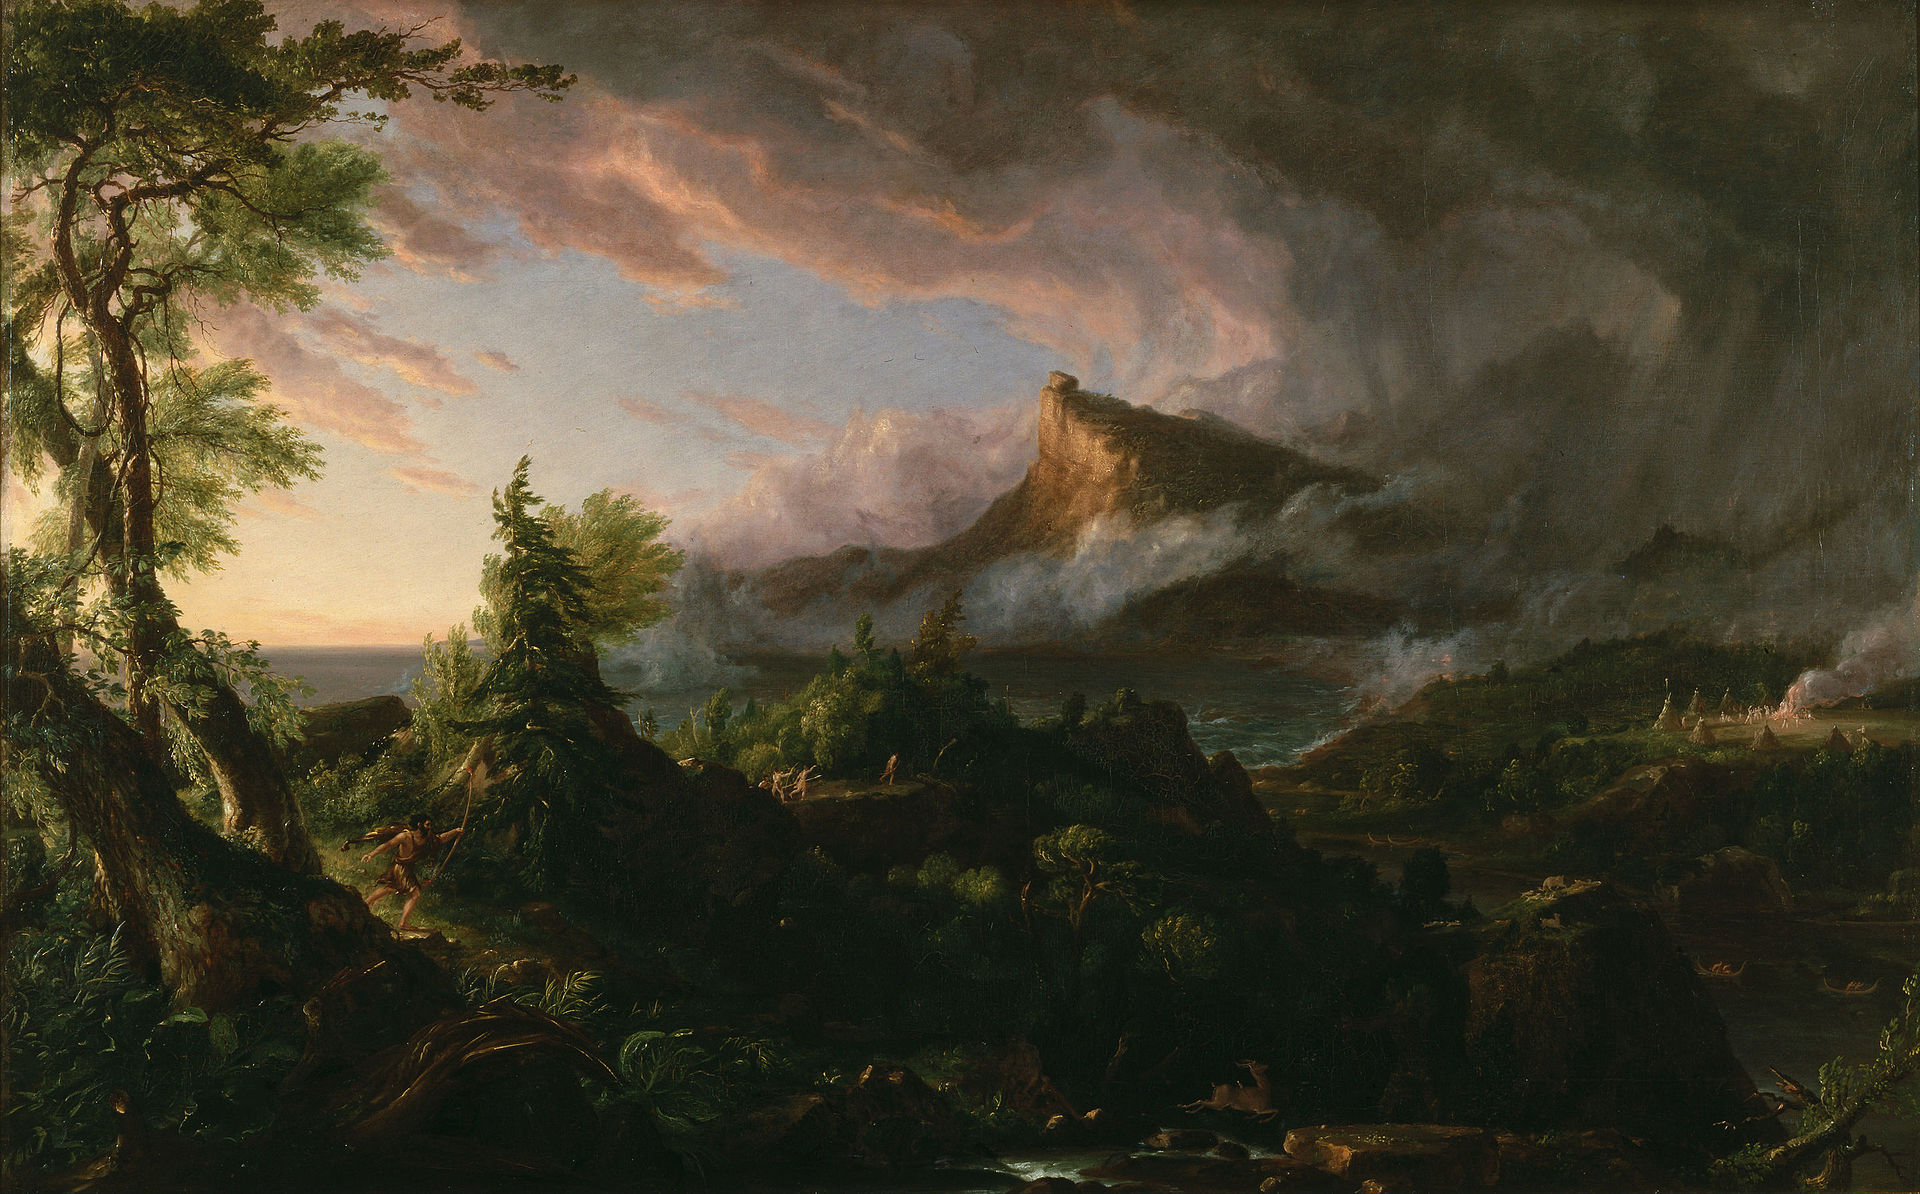 Thomas Cole, The Course of Empire. The Savage State, 1836